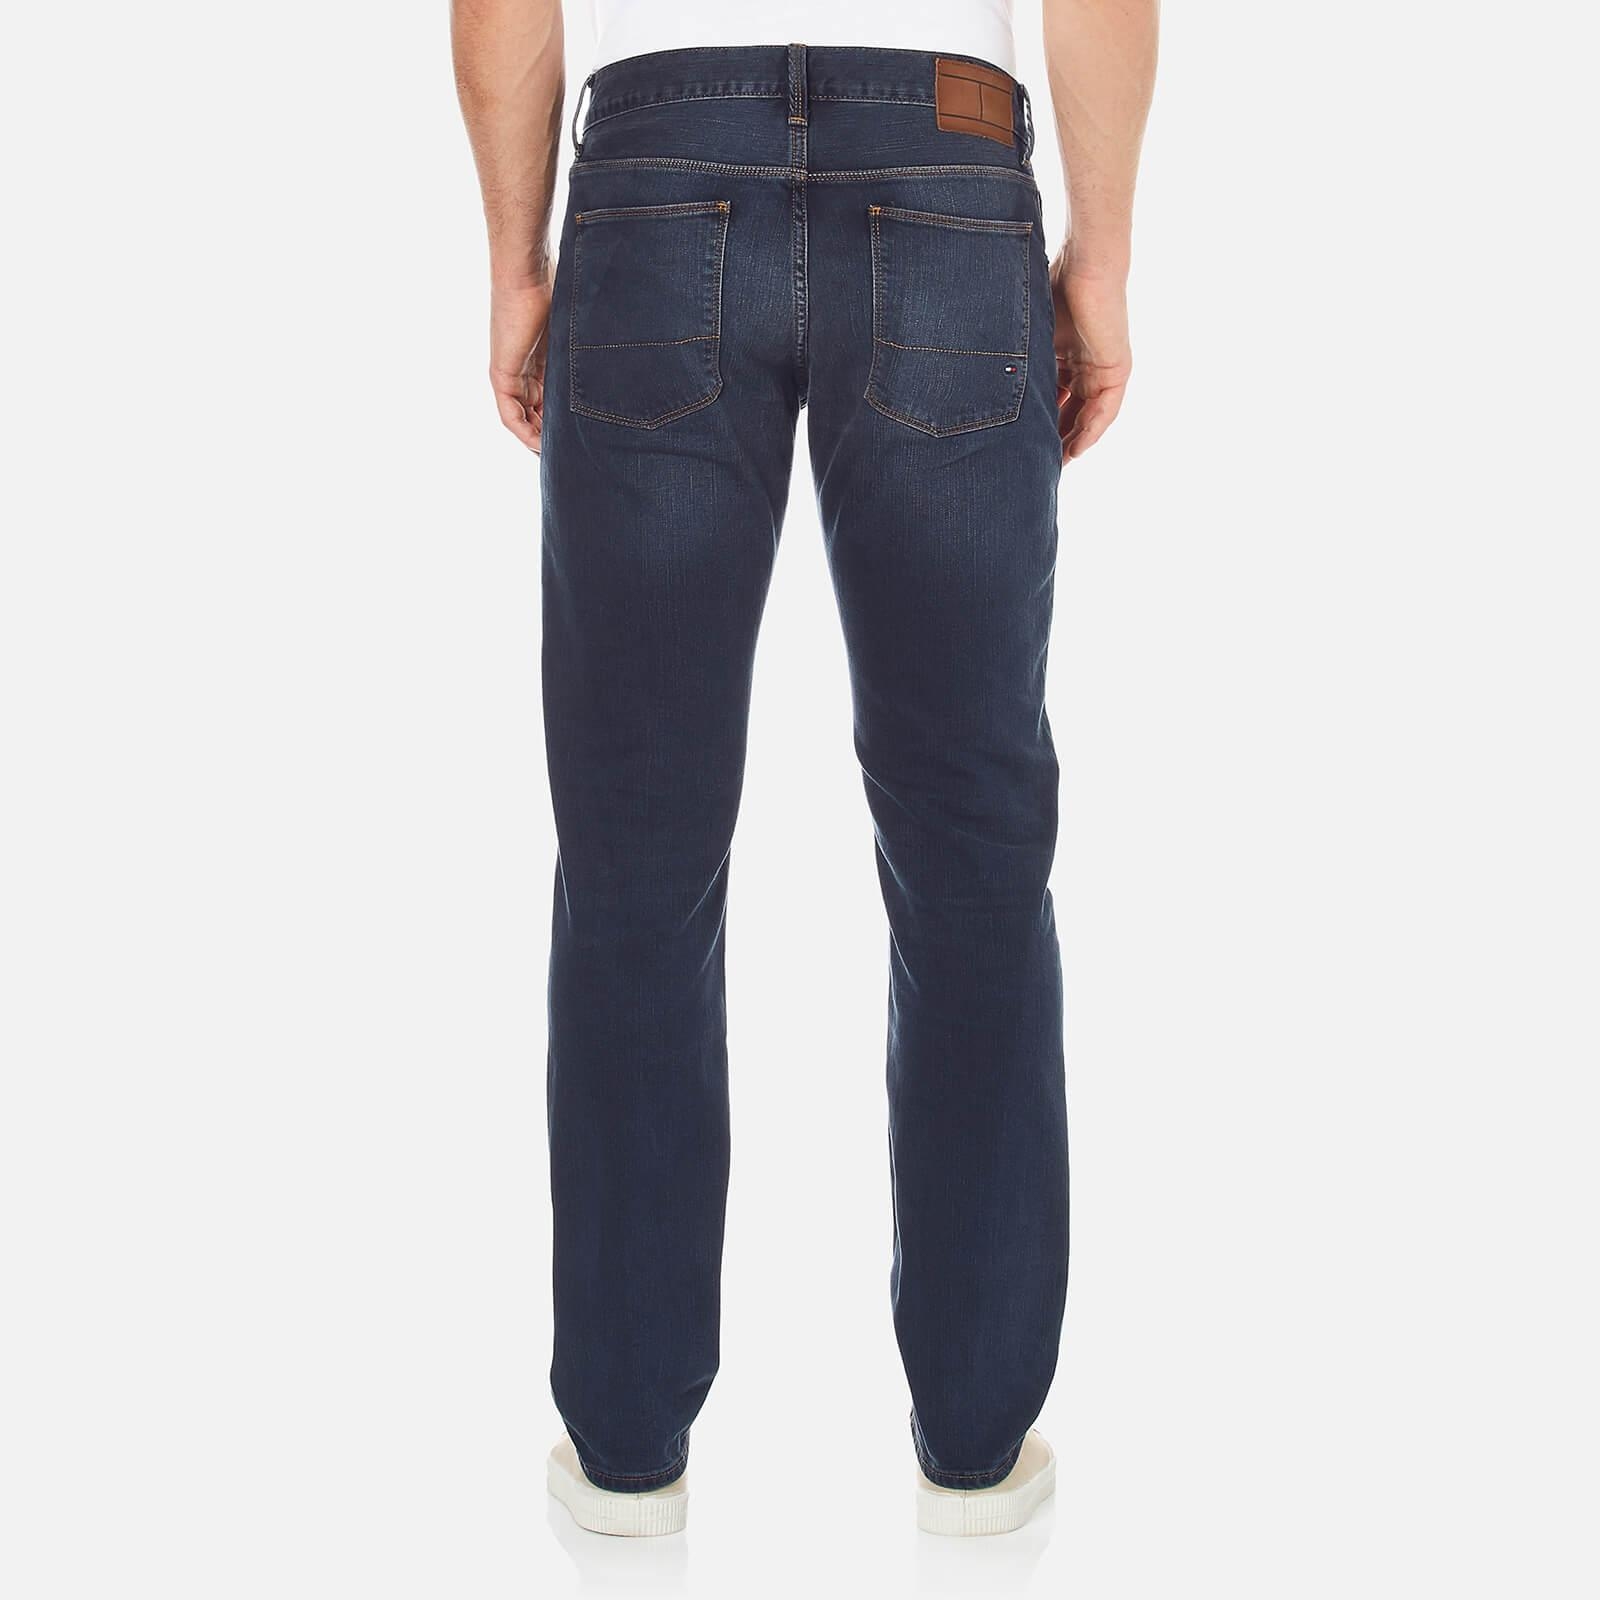 6af98b50d Tommy Hilfiger - Blue Denton Straight Leg Denim Jeans for Men - Lyst. View  fullscreen